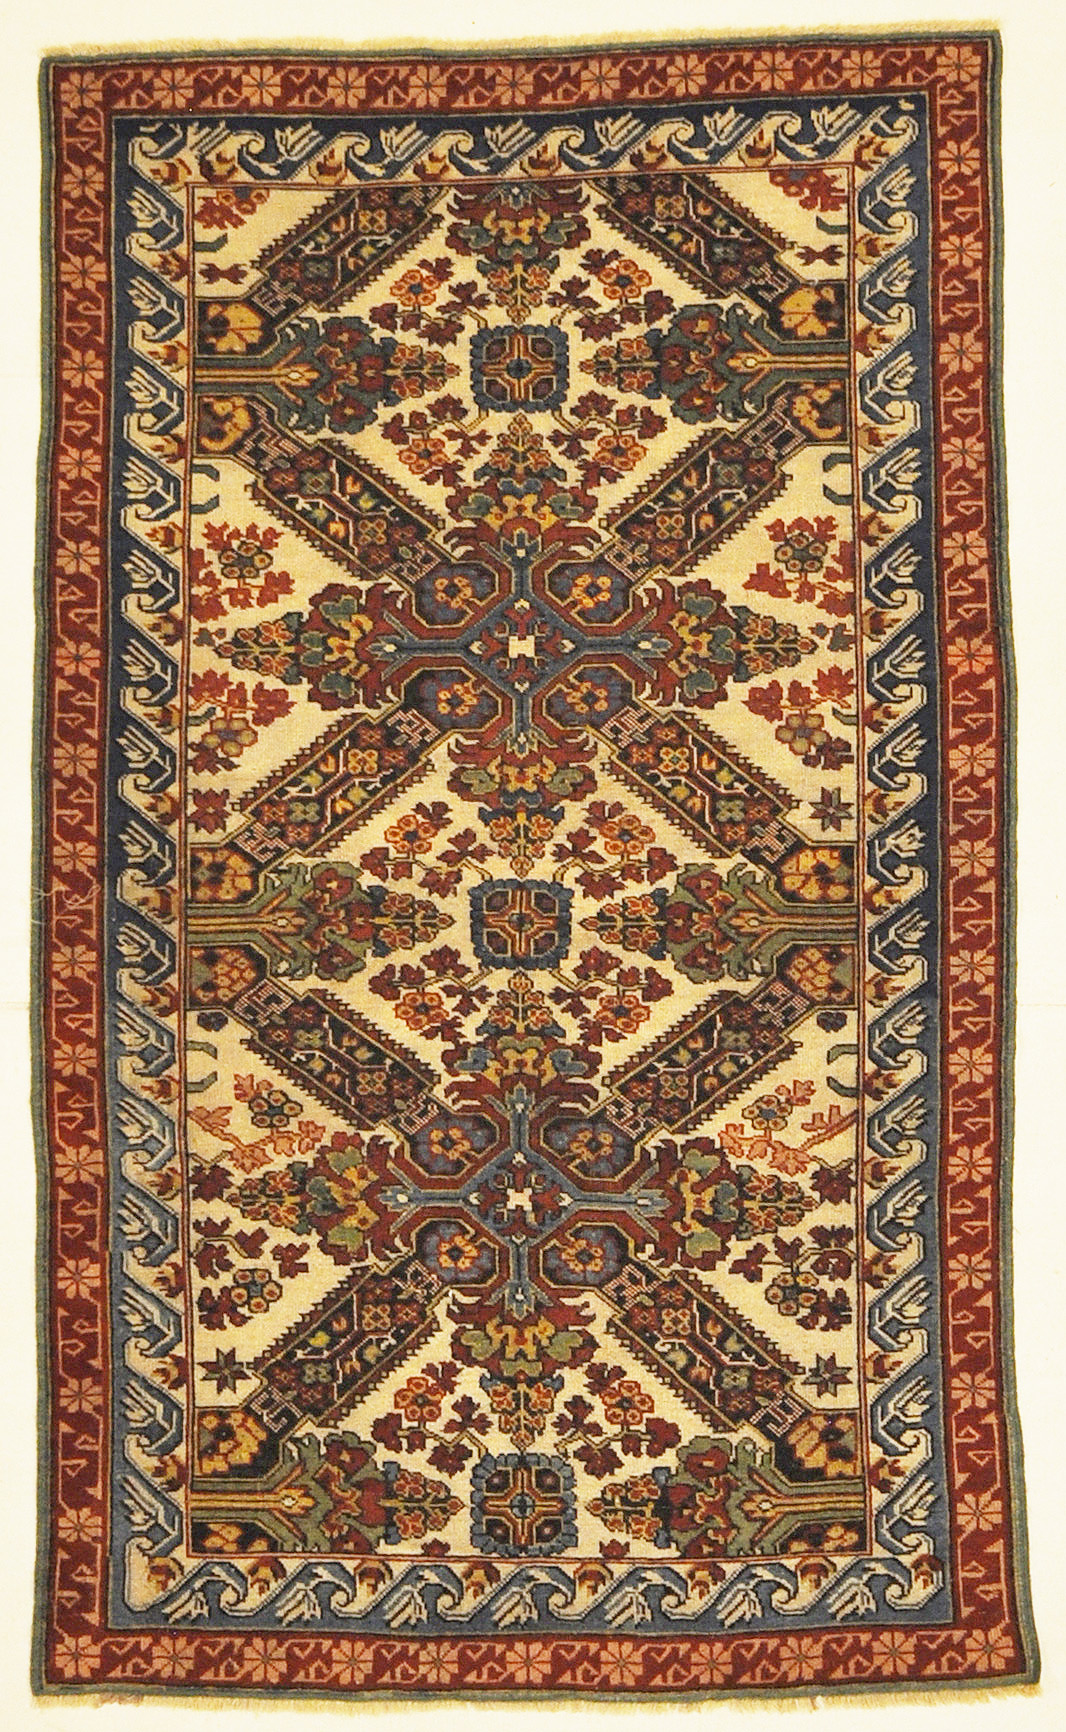 Rare Antique Caucasian Kuba Zeichur ca 1850 Genuine Tribal Classic Woven Art Azerbaijan Collectible Carpet Santa Barbara Design Center